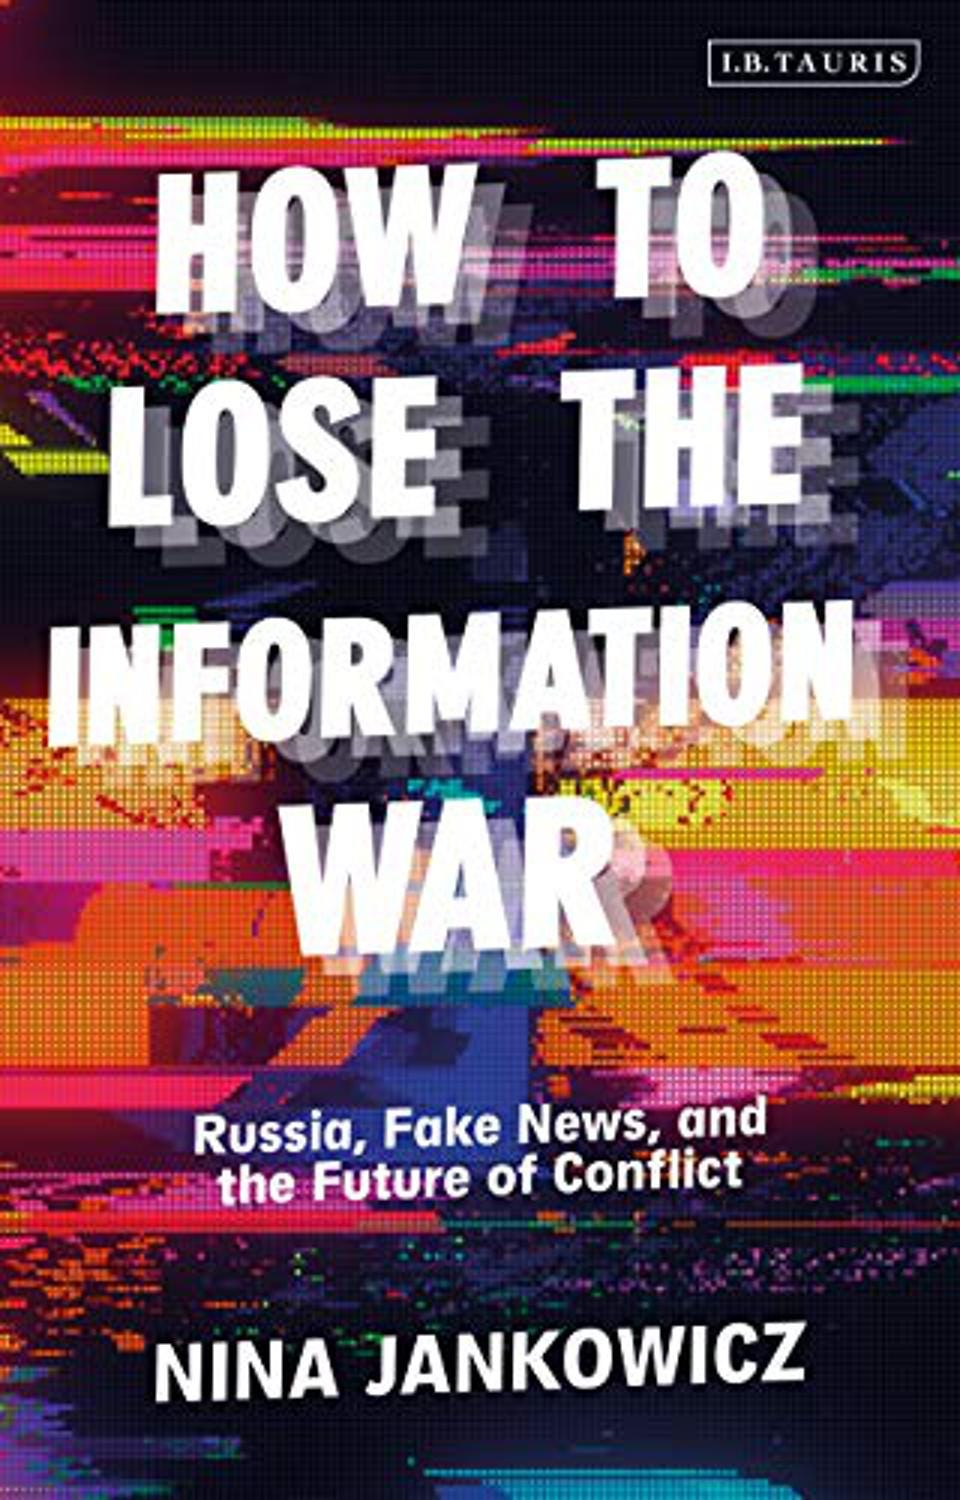 Nina Jankowicz is disinformation fellow at the wilson center